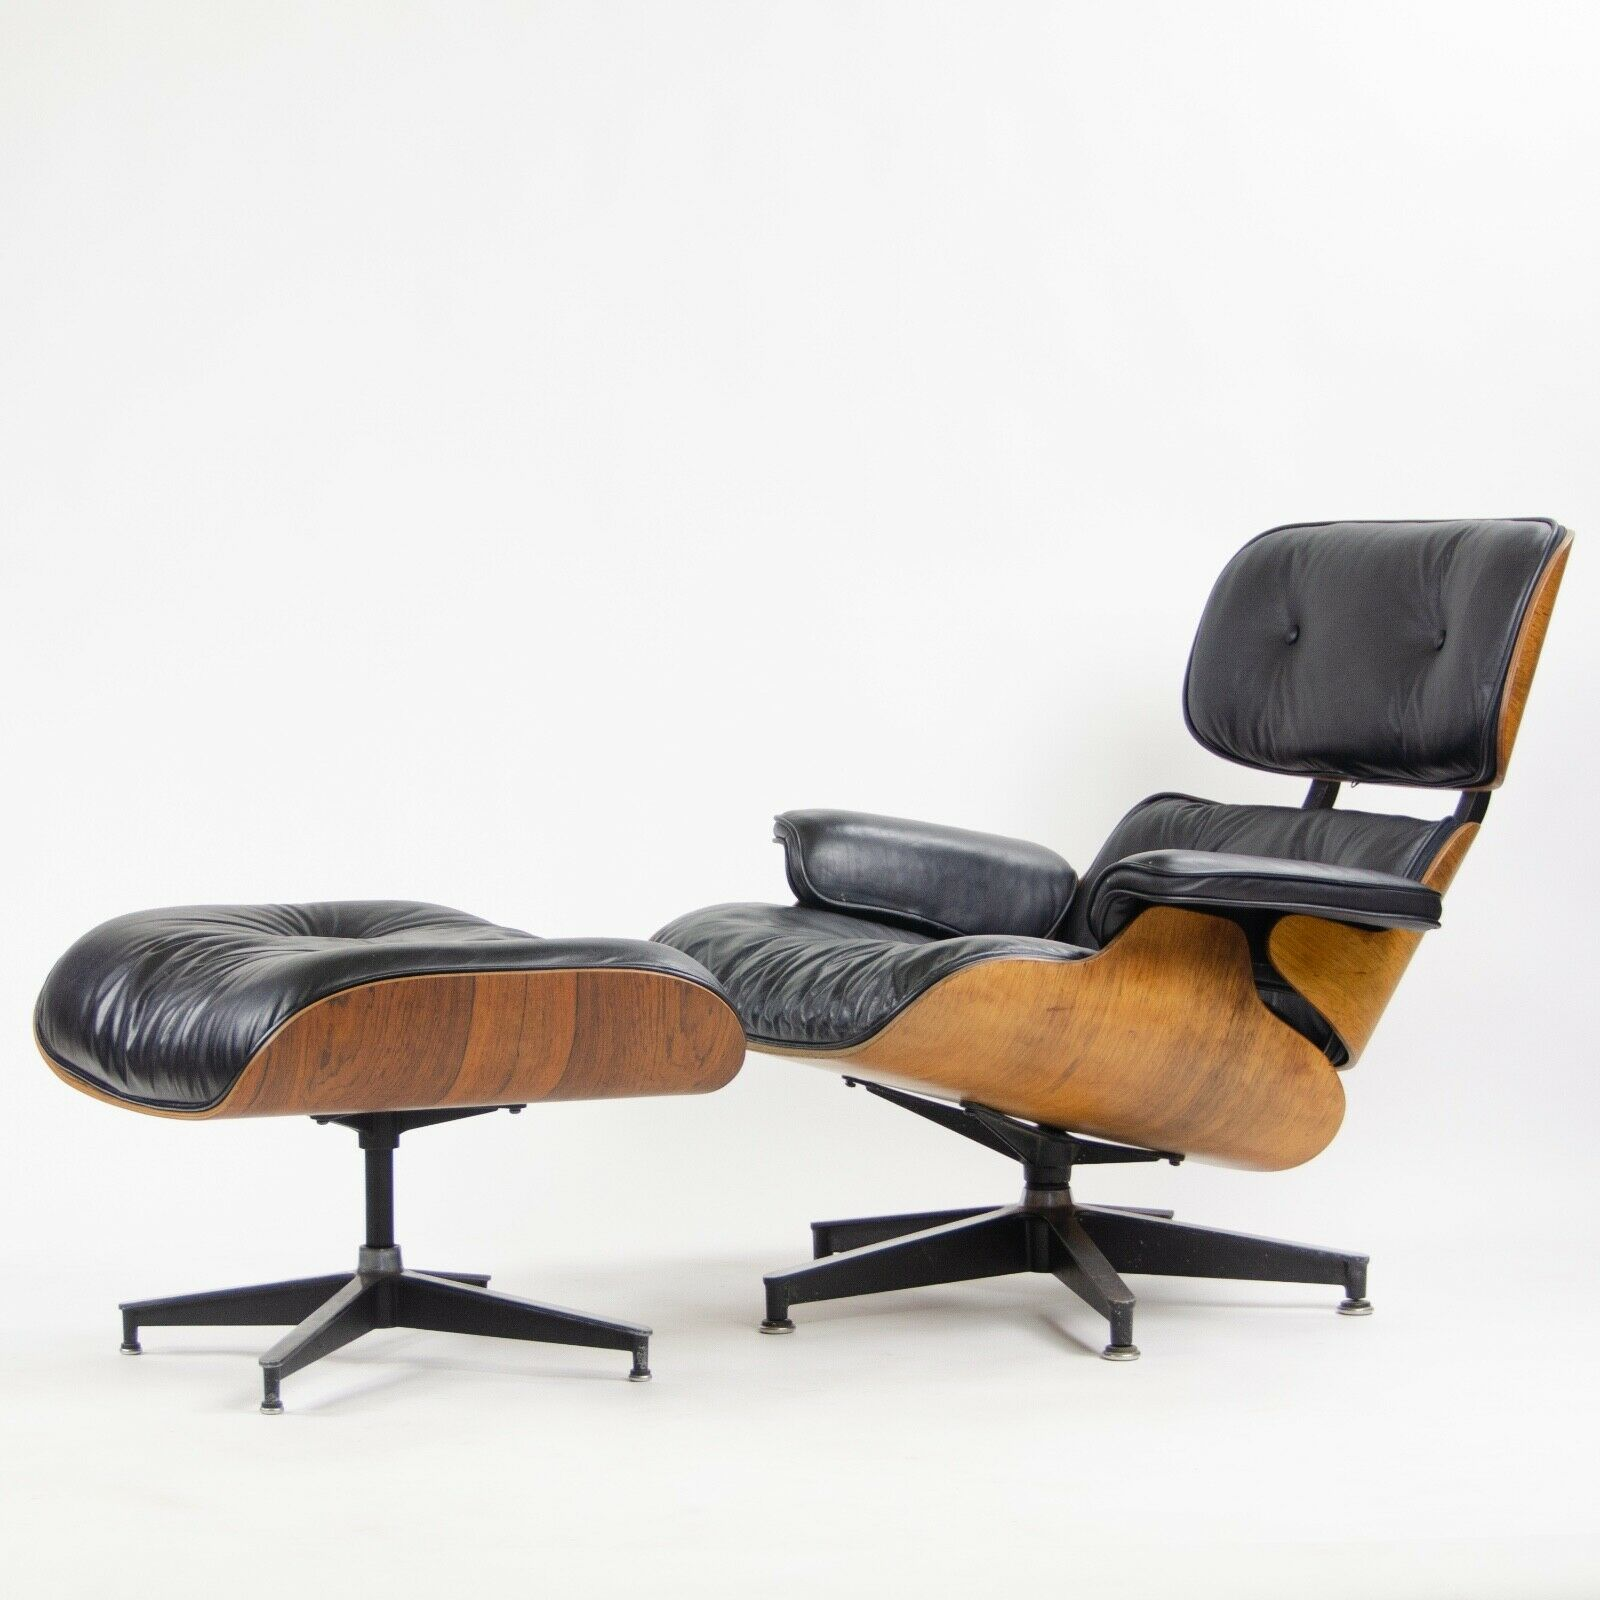 Eames Chair Herman Miller Ebay Details About 1960 S Herman Miller Eames Lounge Chair Ottoman Rosewood 670 671 Black Leather